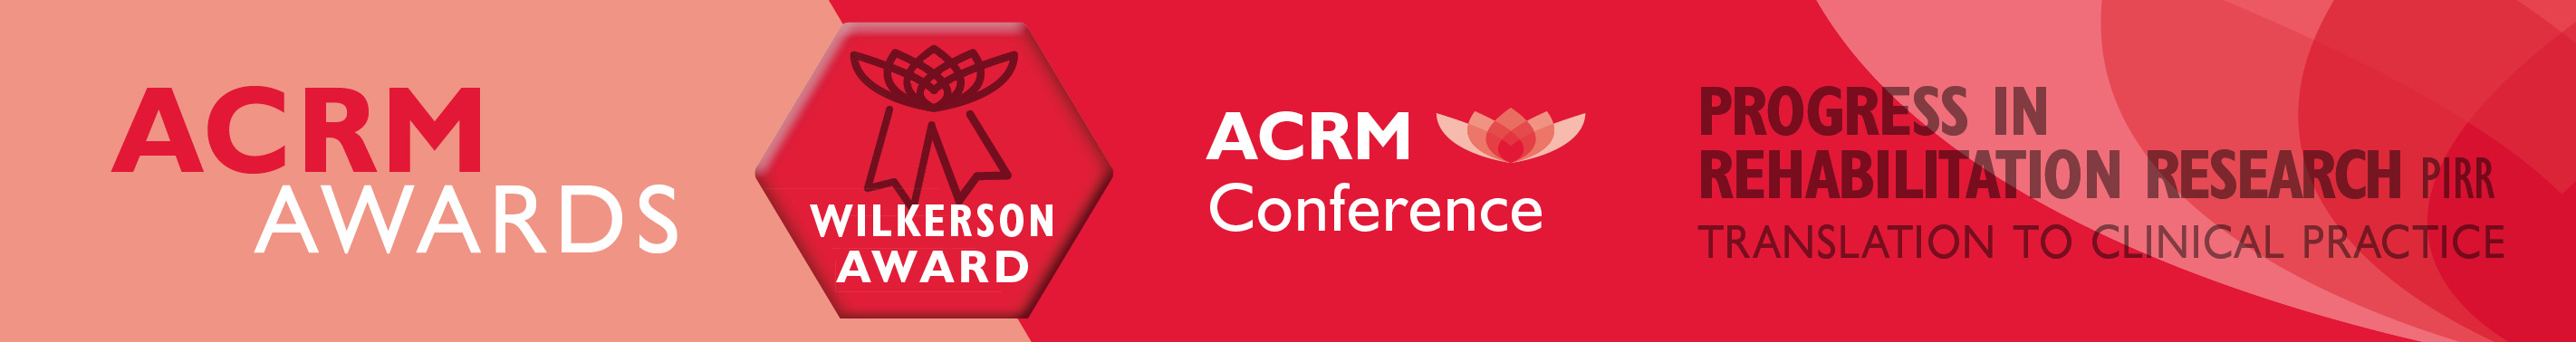 Deborah L. Wilkerson Early Career Award ACRM Award